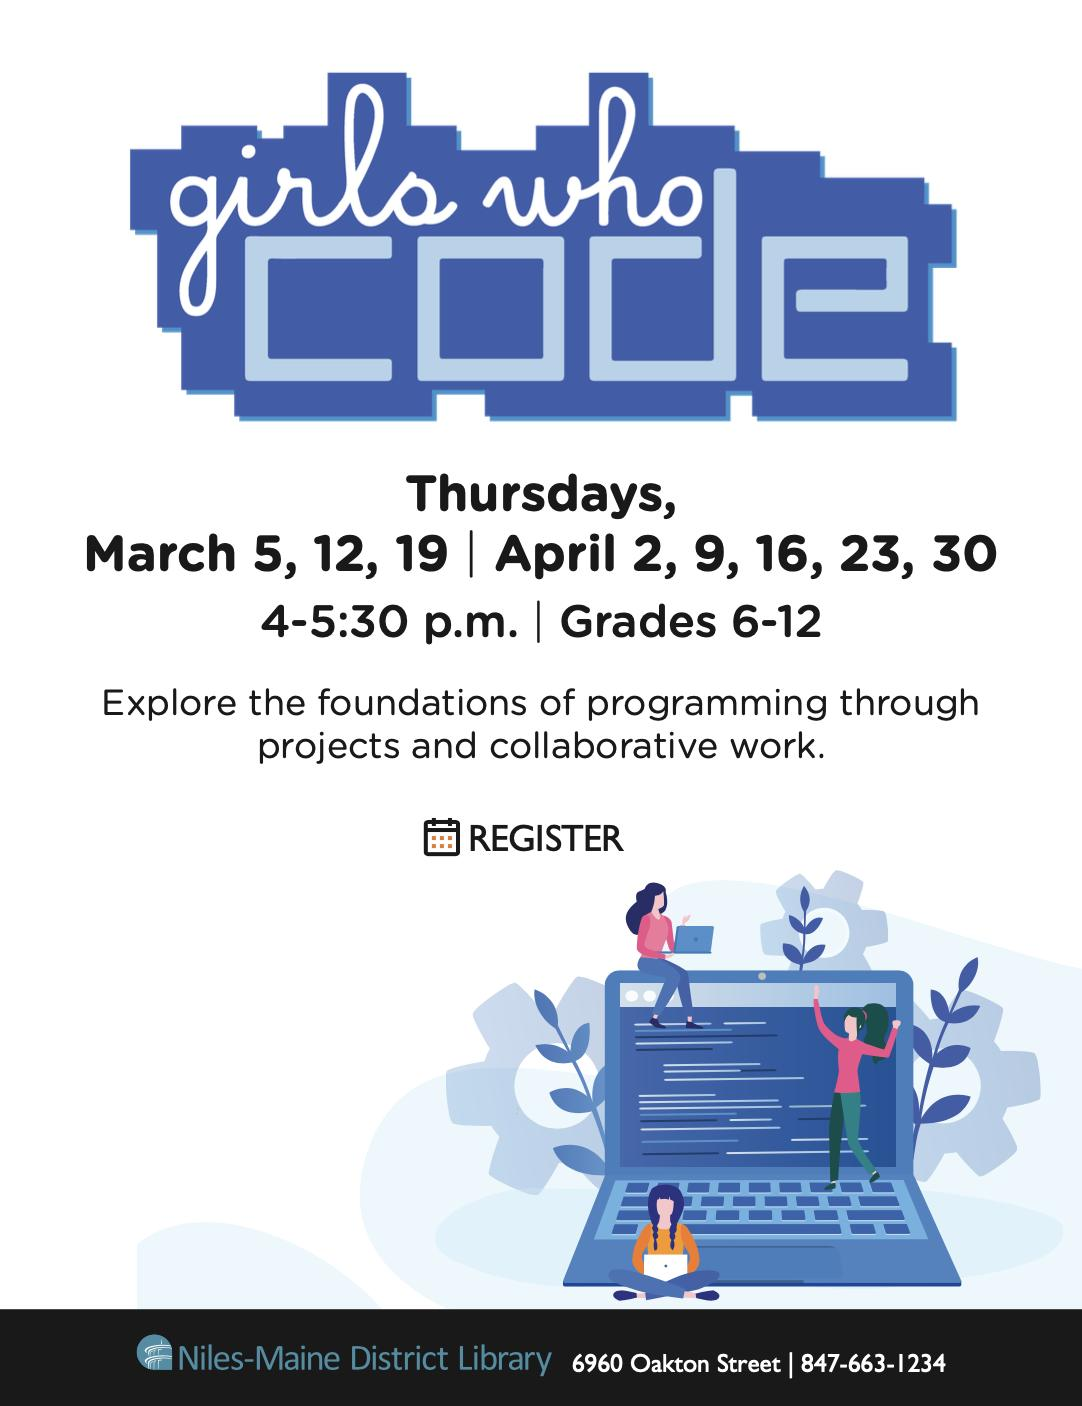 Girls Who Code at Niles-Maine District Library